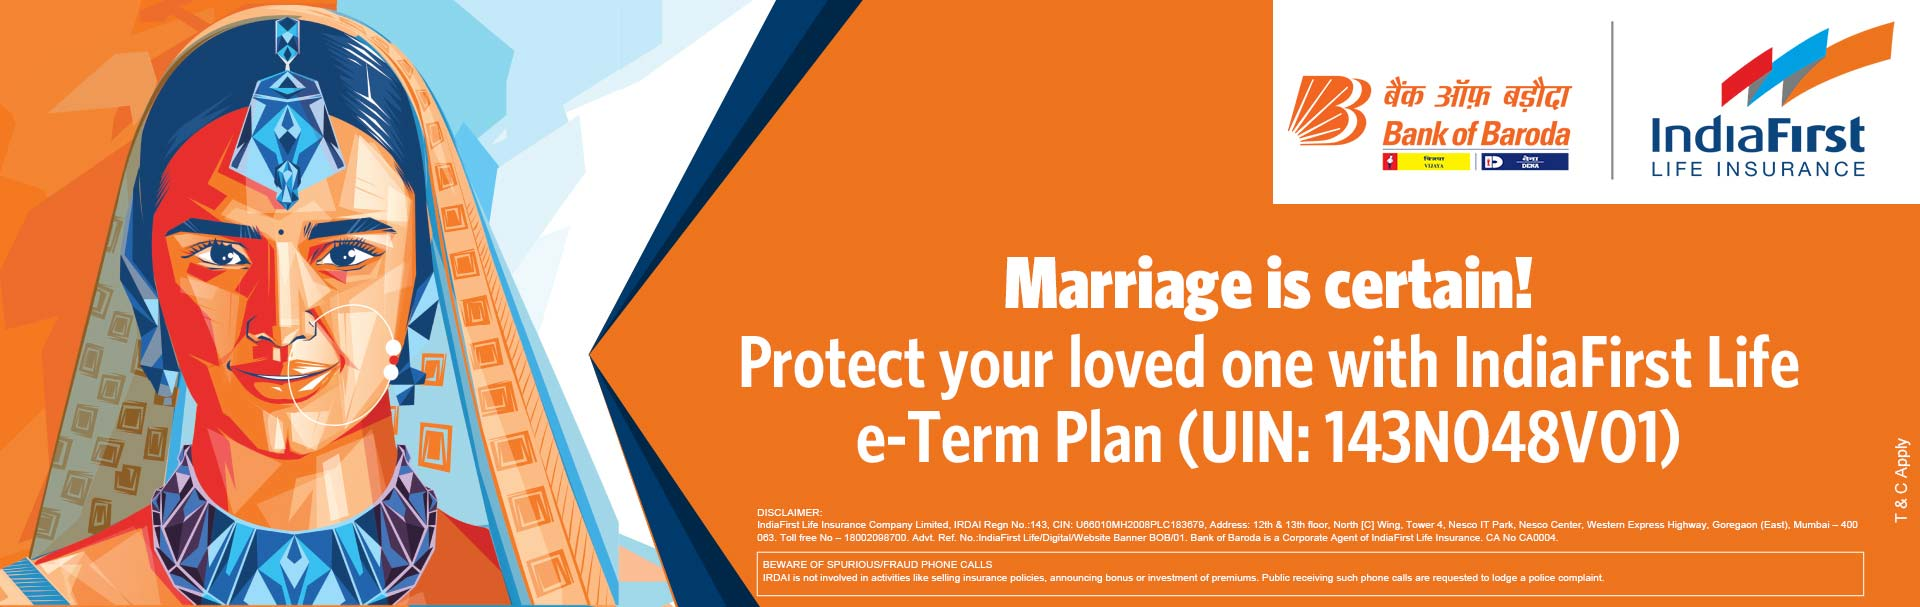 IndiaFirst Life Insurance Company Limited Marriage E-Term Plan